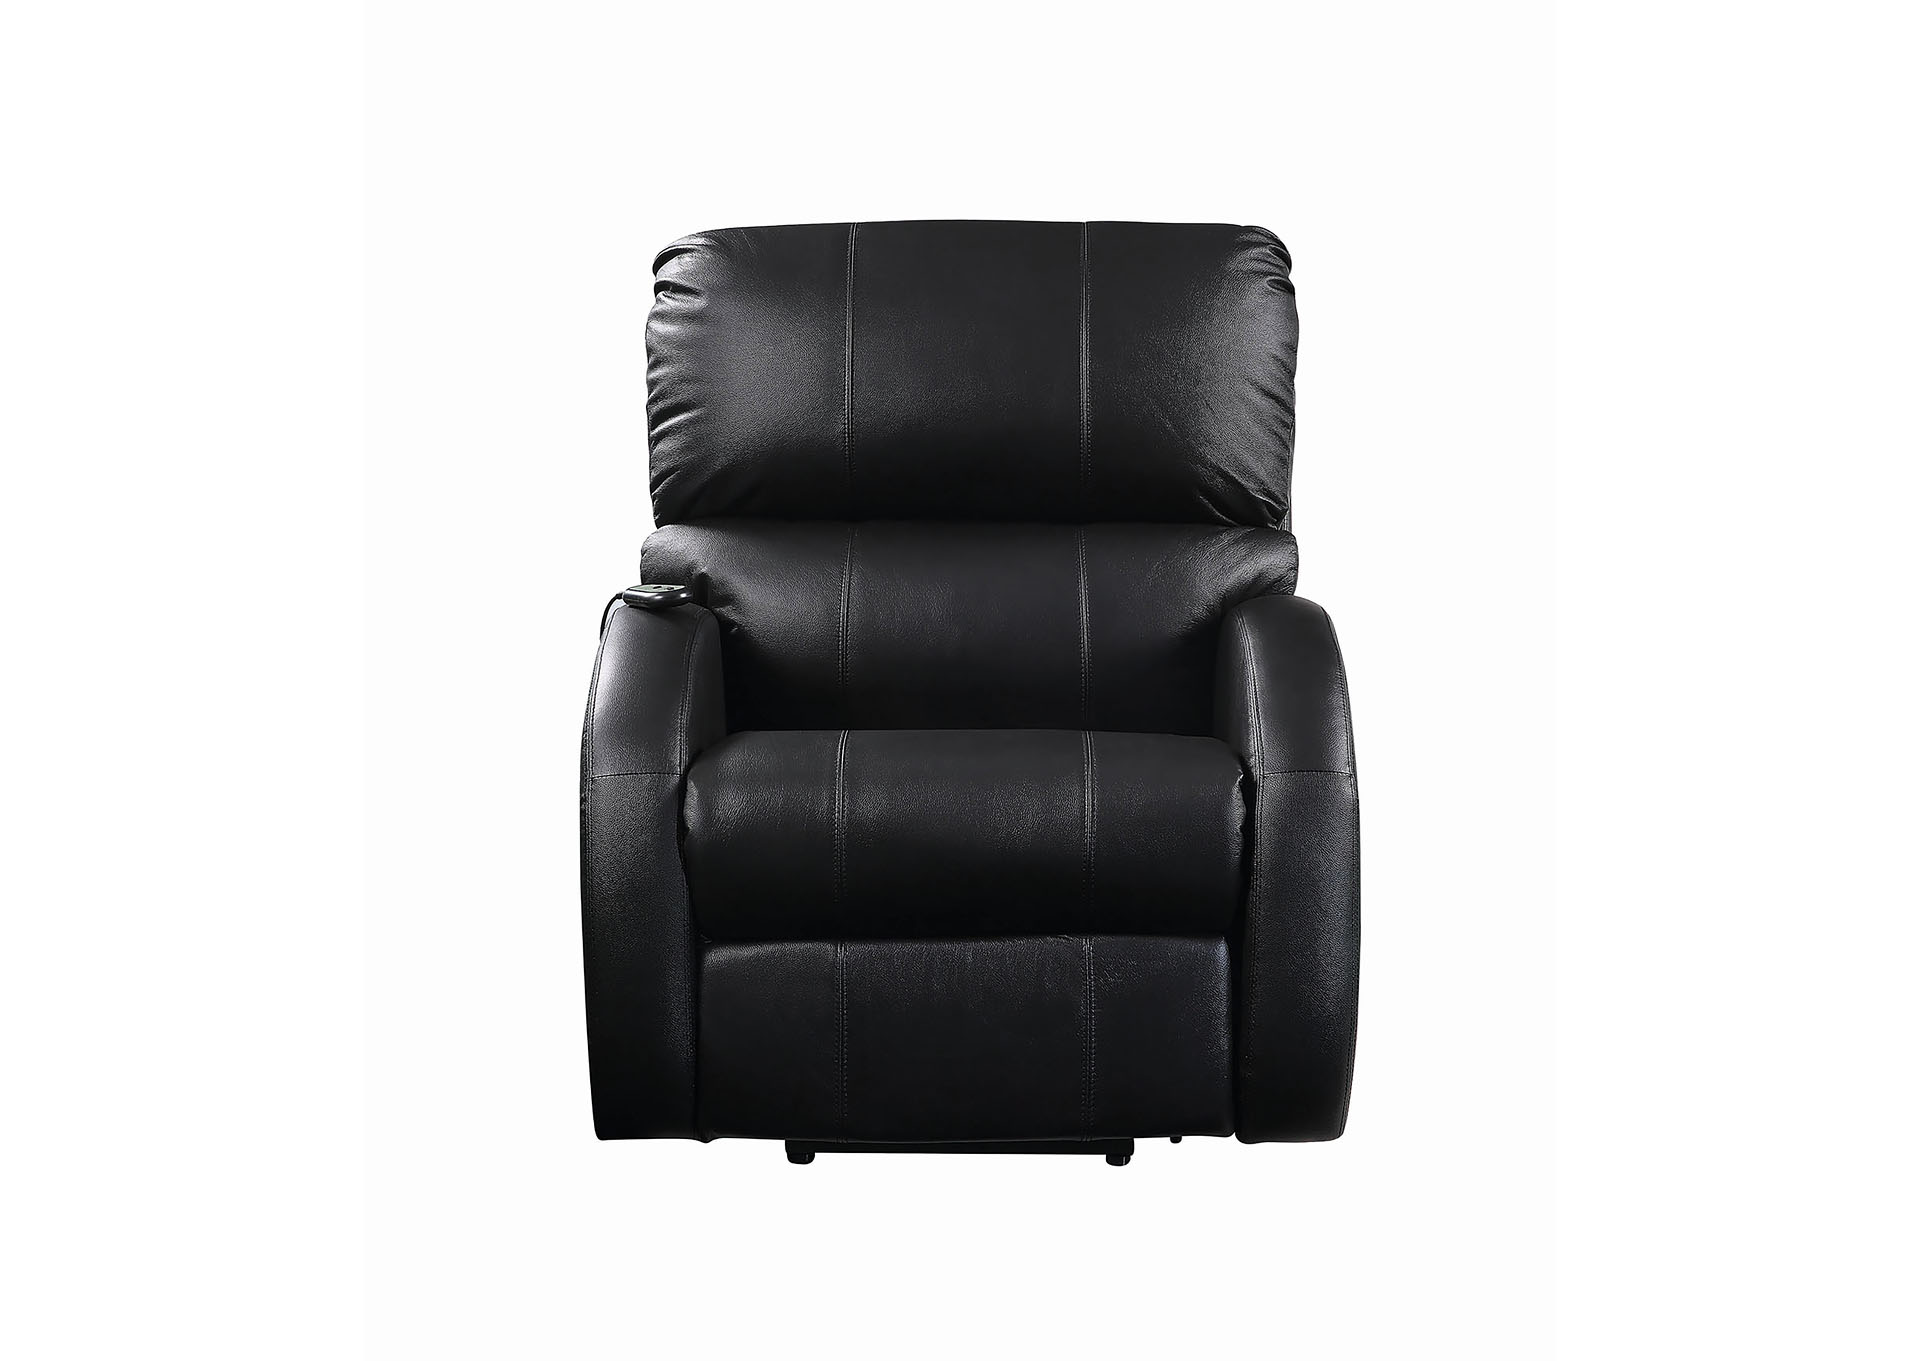 Eerie Black Casual Black Power Lift Recliner,Coaster Furniture